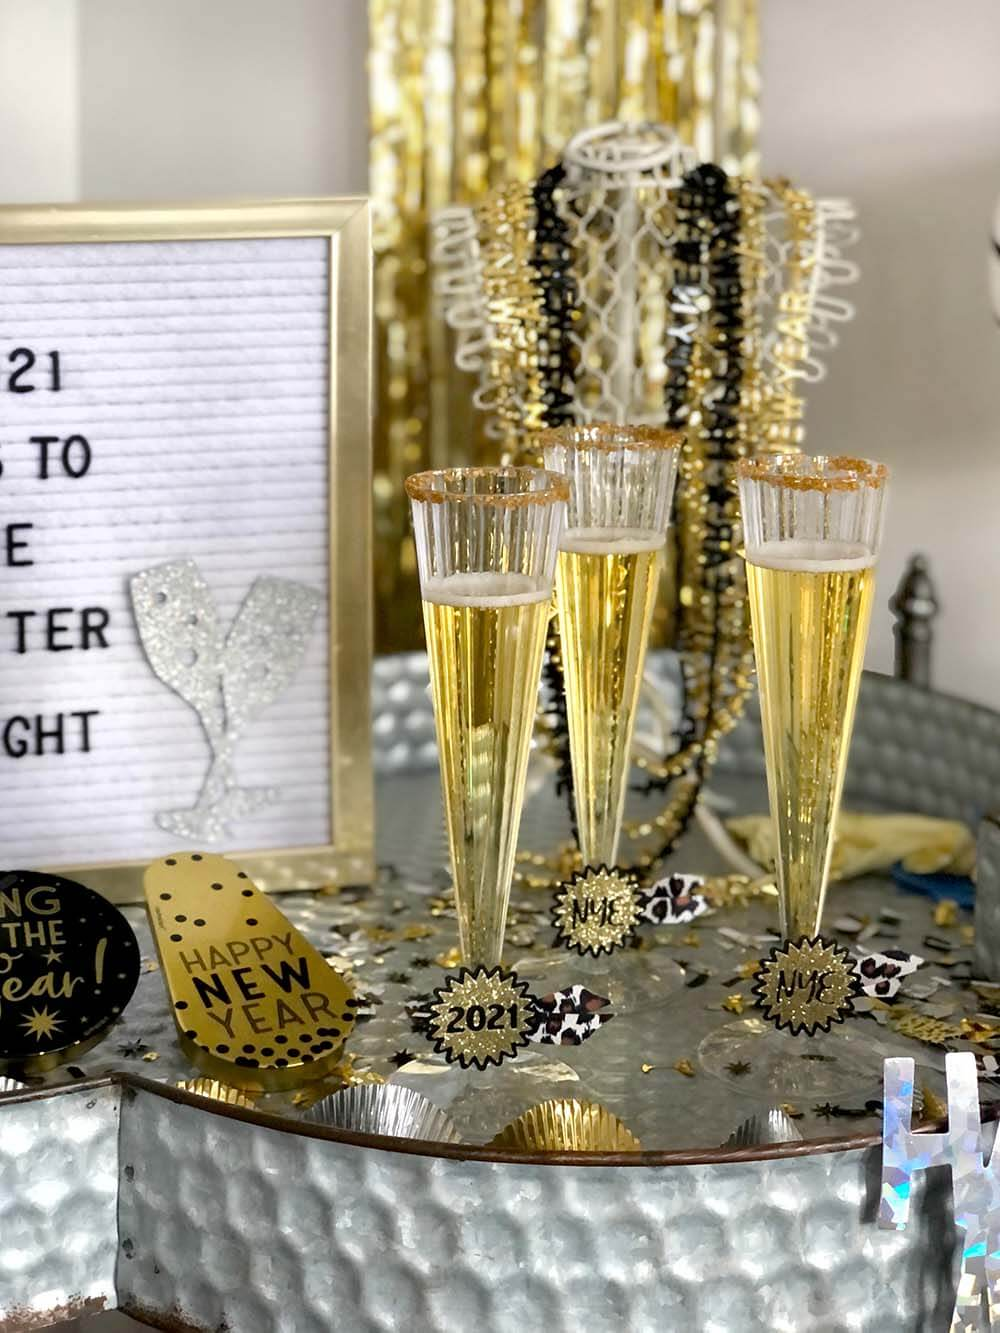 Martinelli's flutes with sugared rims for a family friendly new years eve party